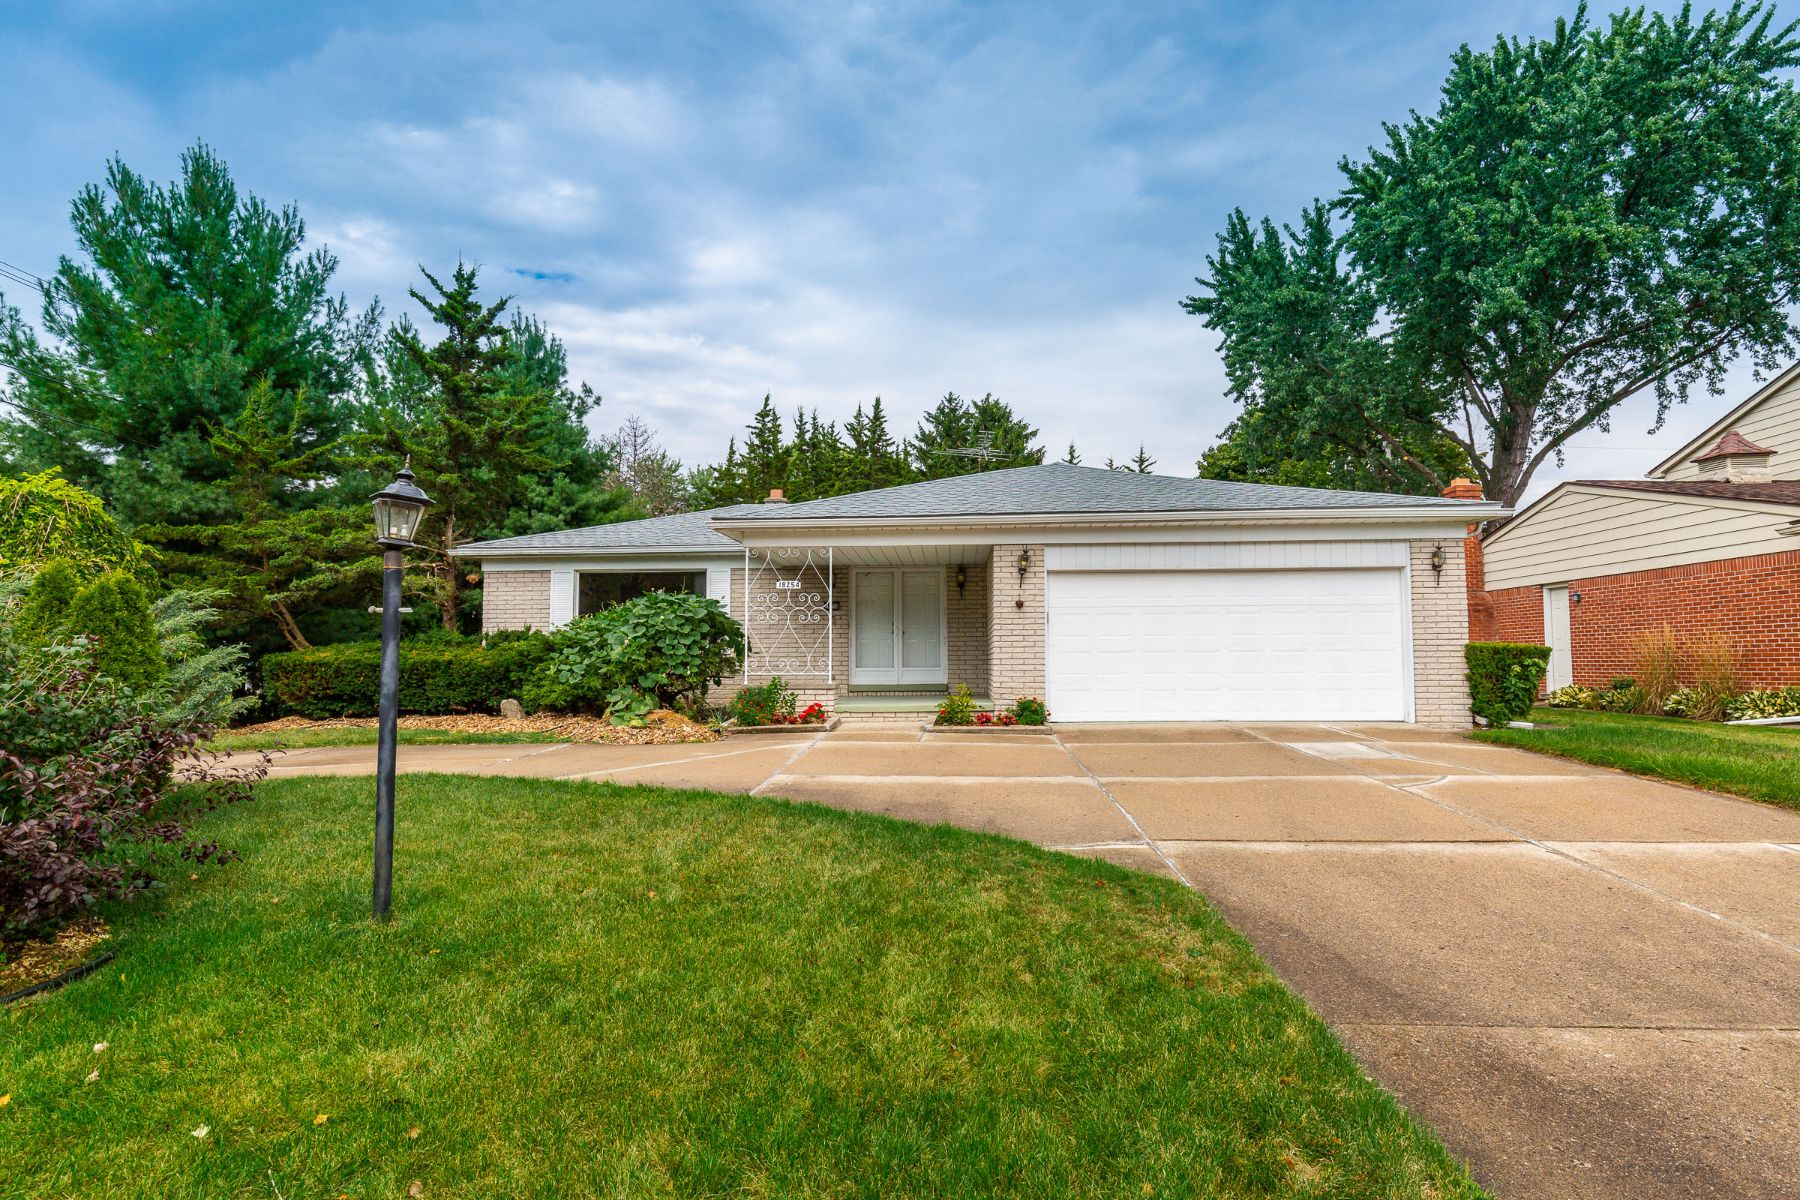 Single Family Homes for Sale at Lathrup Village 18254 Meadowood Ave Lathrup Village, Michigan 48076 United States